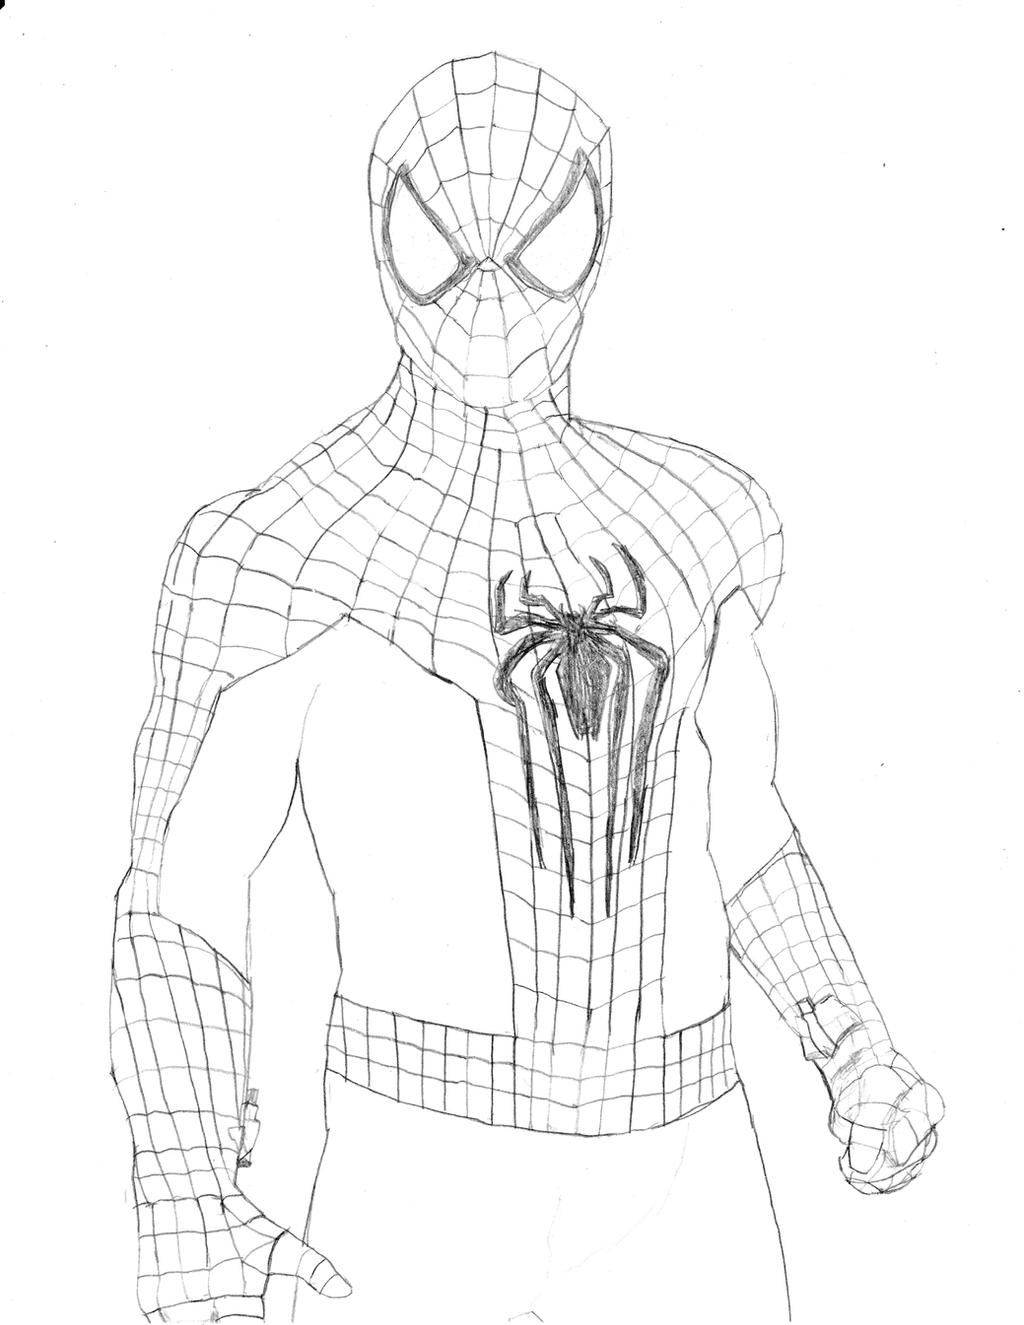 The un amazing spider man 2 by homer311 on deviantart for The amazing spider man 2 coloring pages